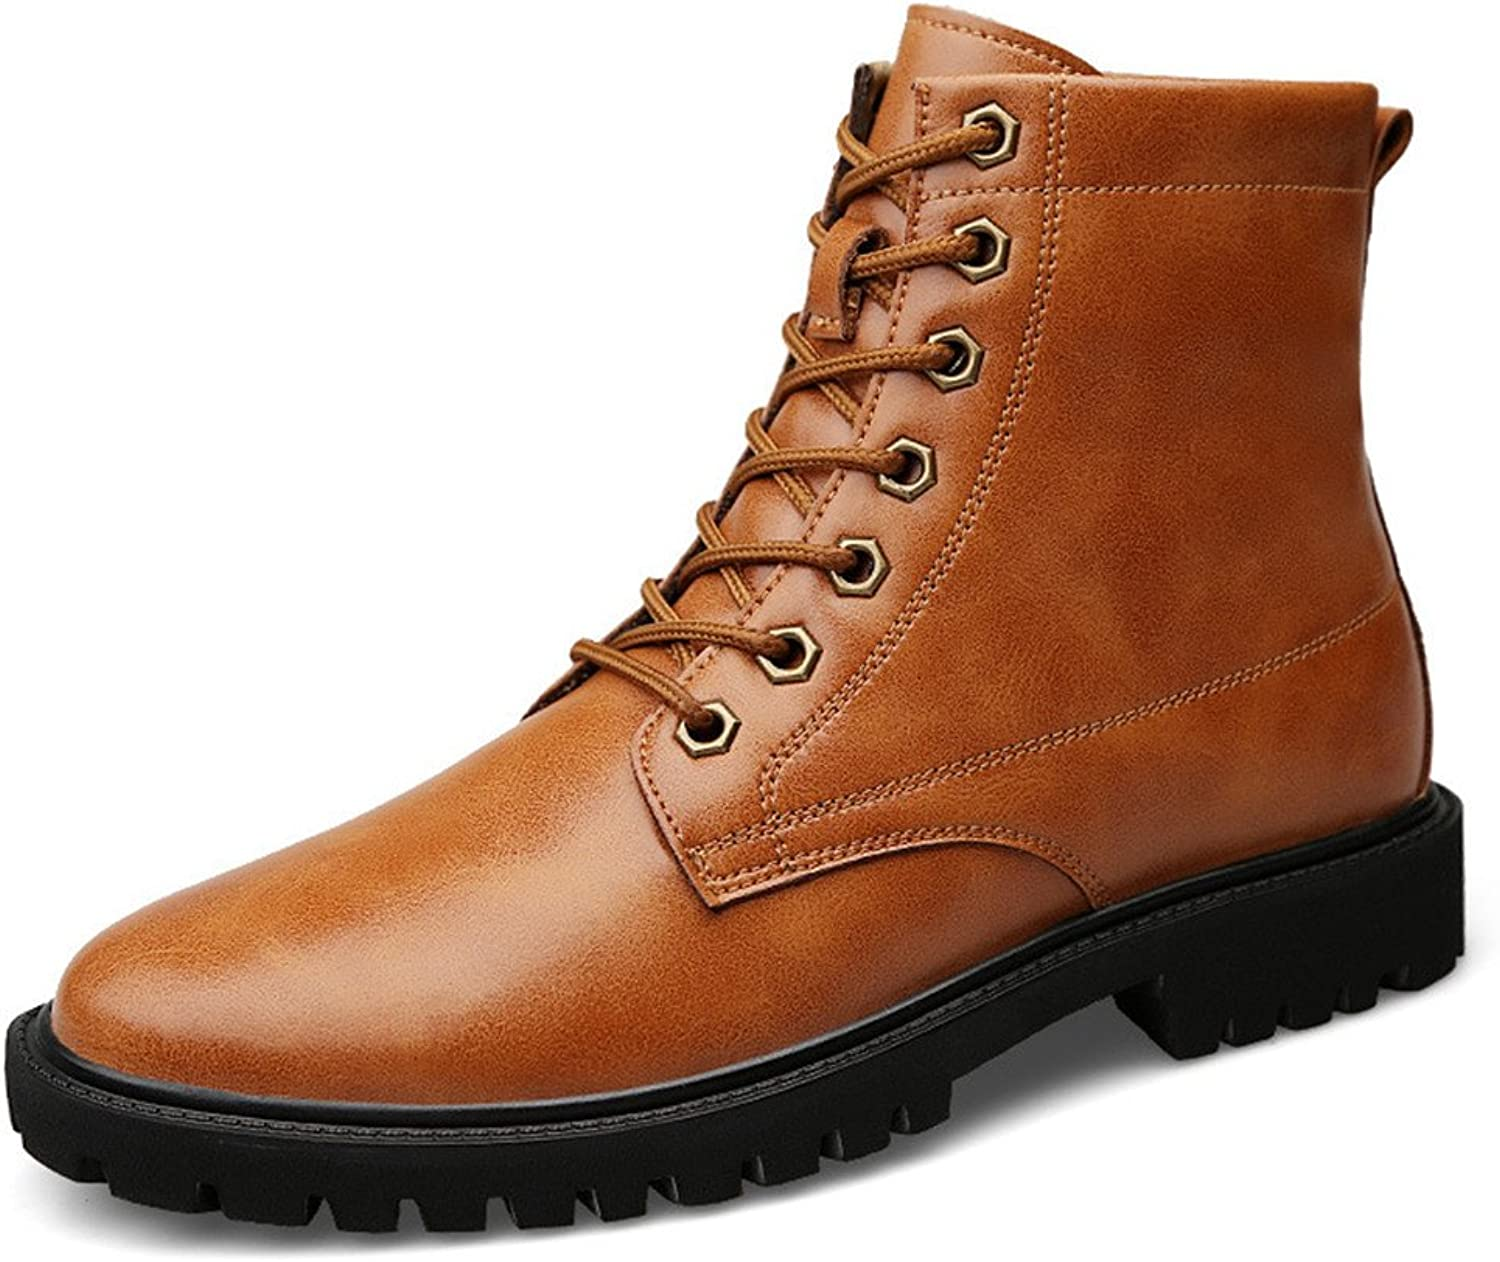 ZQ@QXAutumn and winter leather high help size outdoor leisure fashion men Ma Dingxue boots